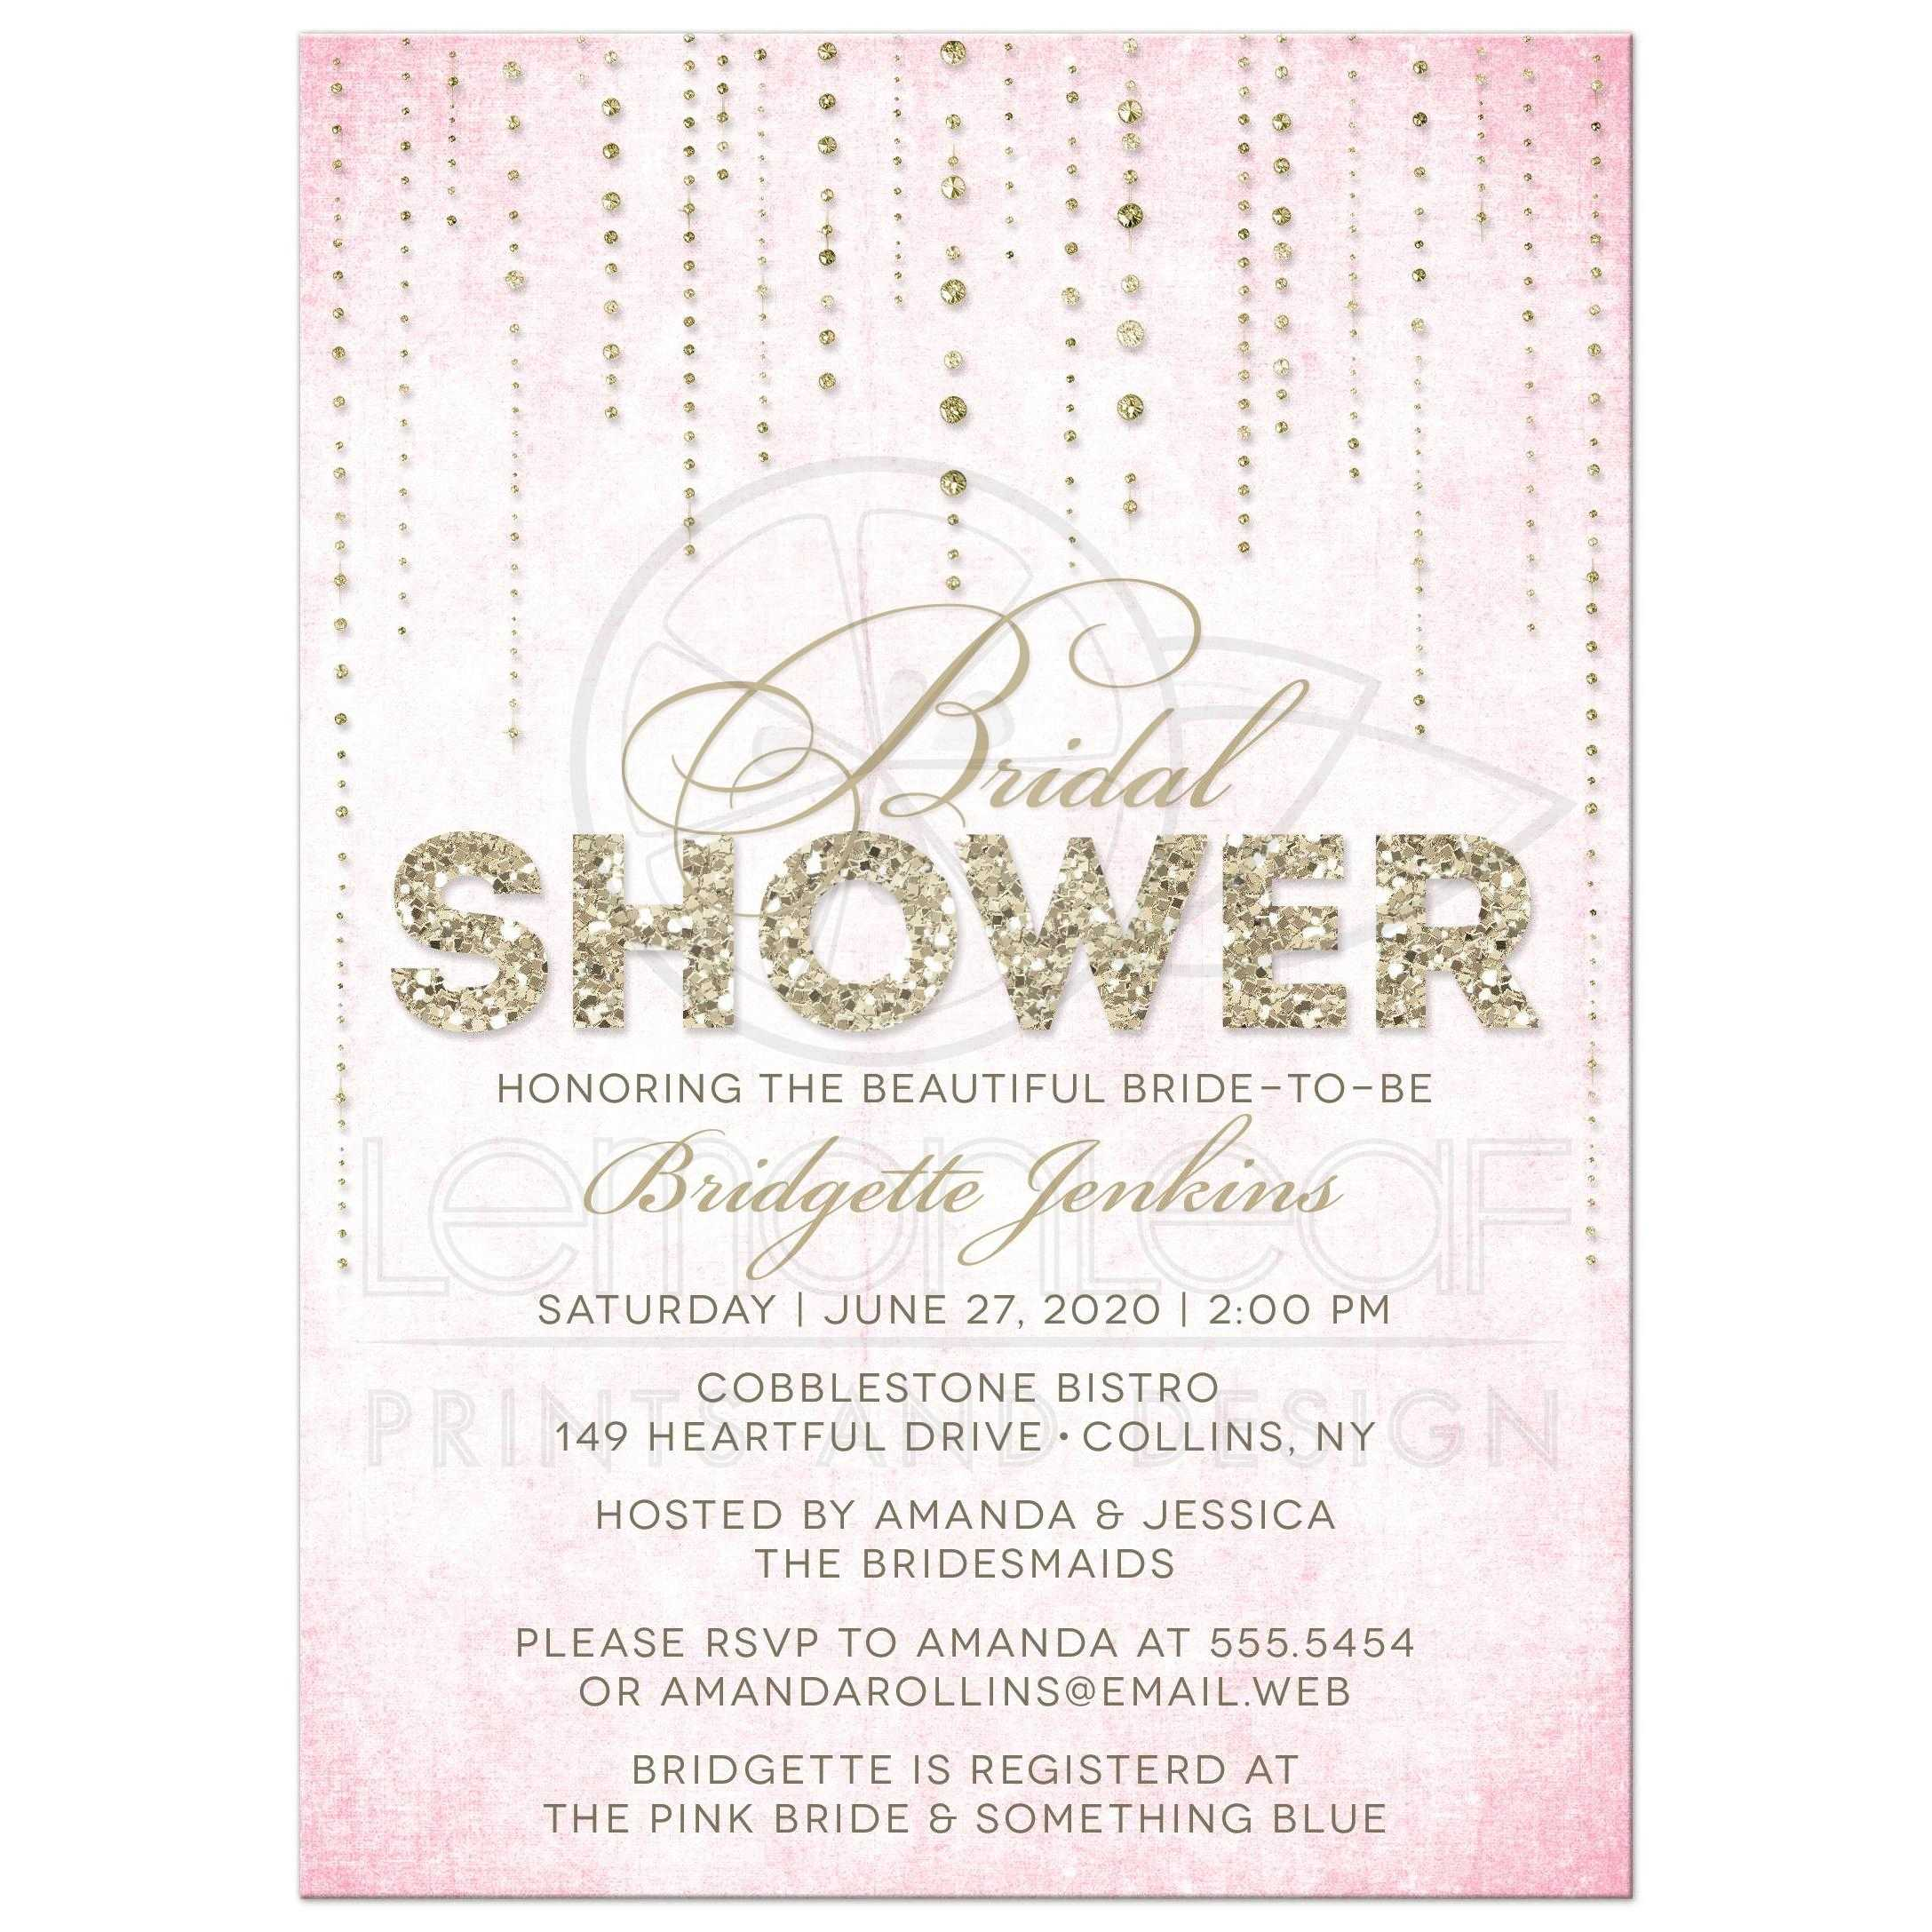 New Bridal Shower Invitations - Pink & Gold Glitter Look Streaming Gems KL44